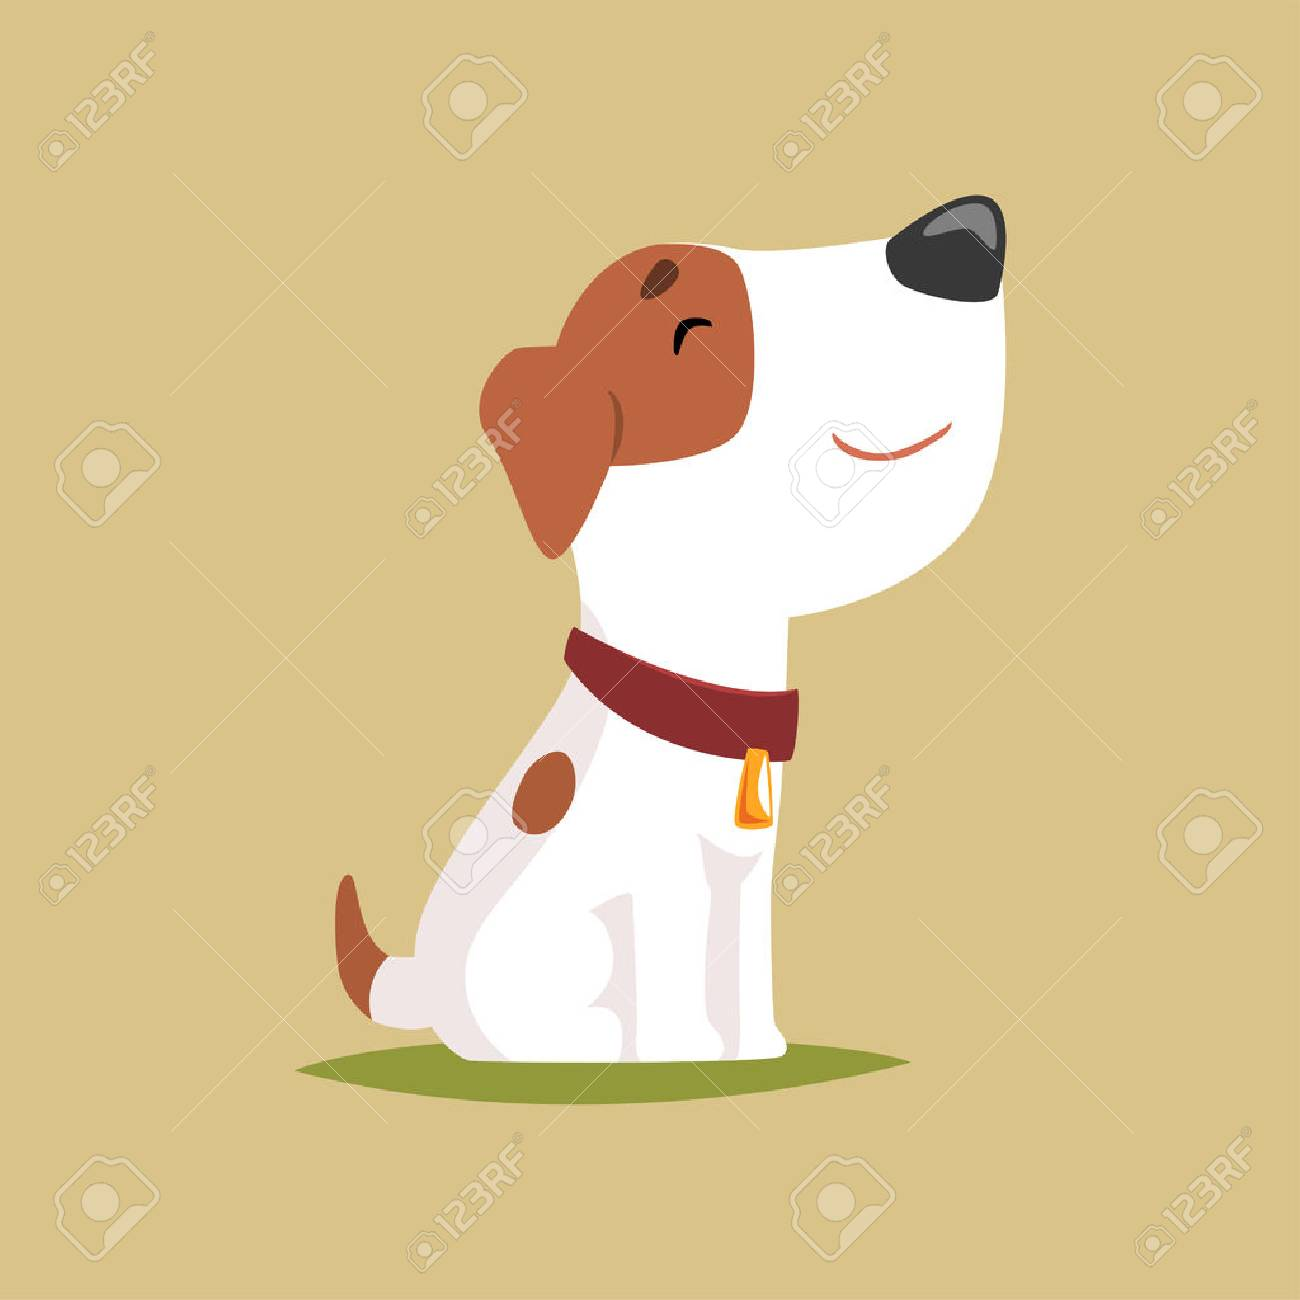 Jack russell puppy character side view, cute funny terrier vector illustration - 90189688